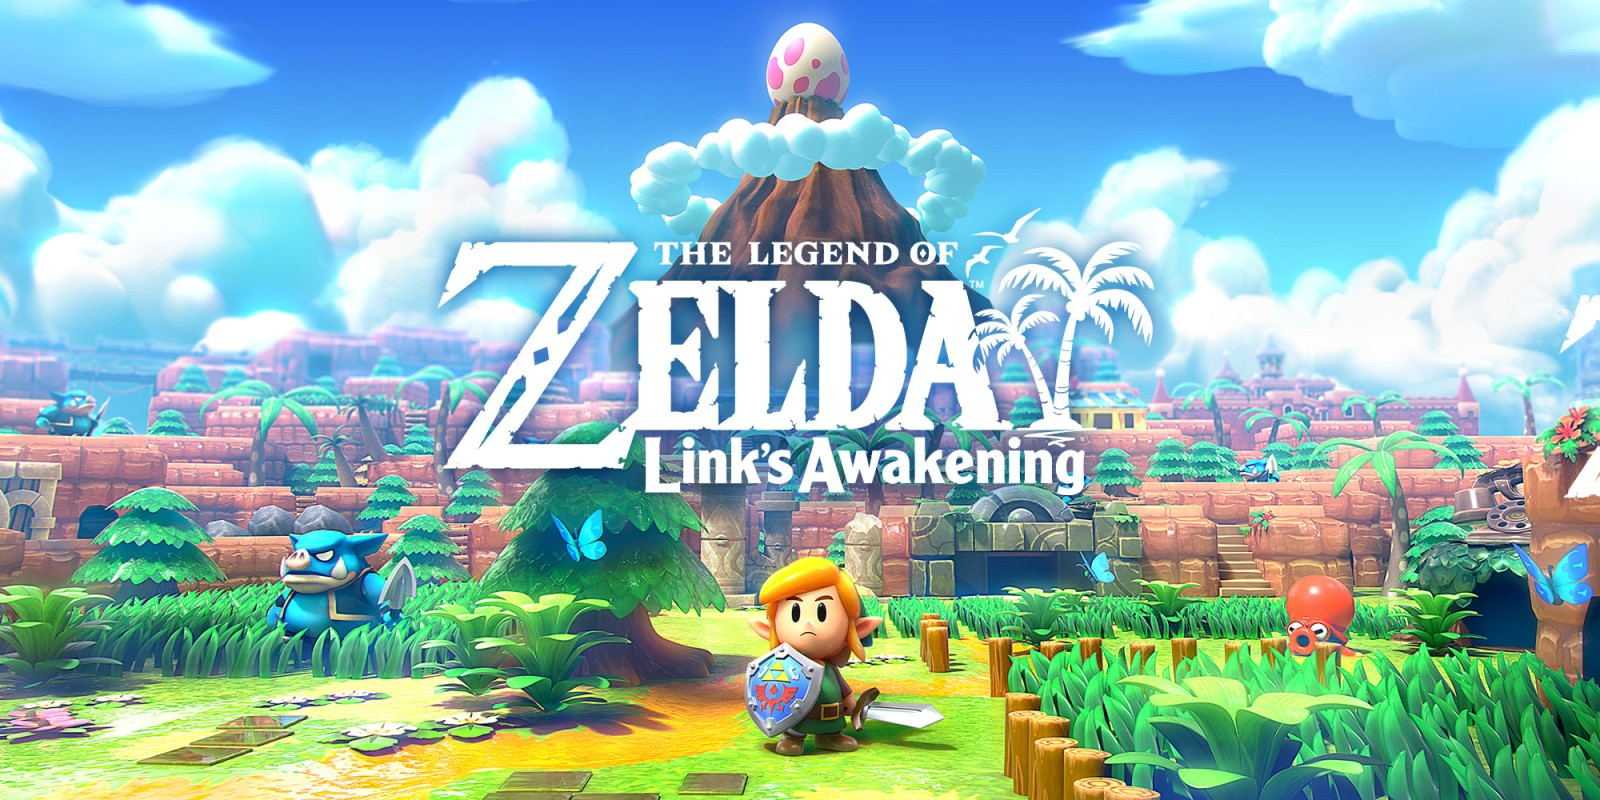 REPORT - Zelda: Link's Awakening number 1 in UK charts, fastest-selling Switch game this year